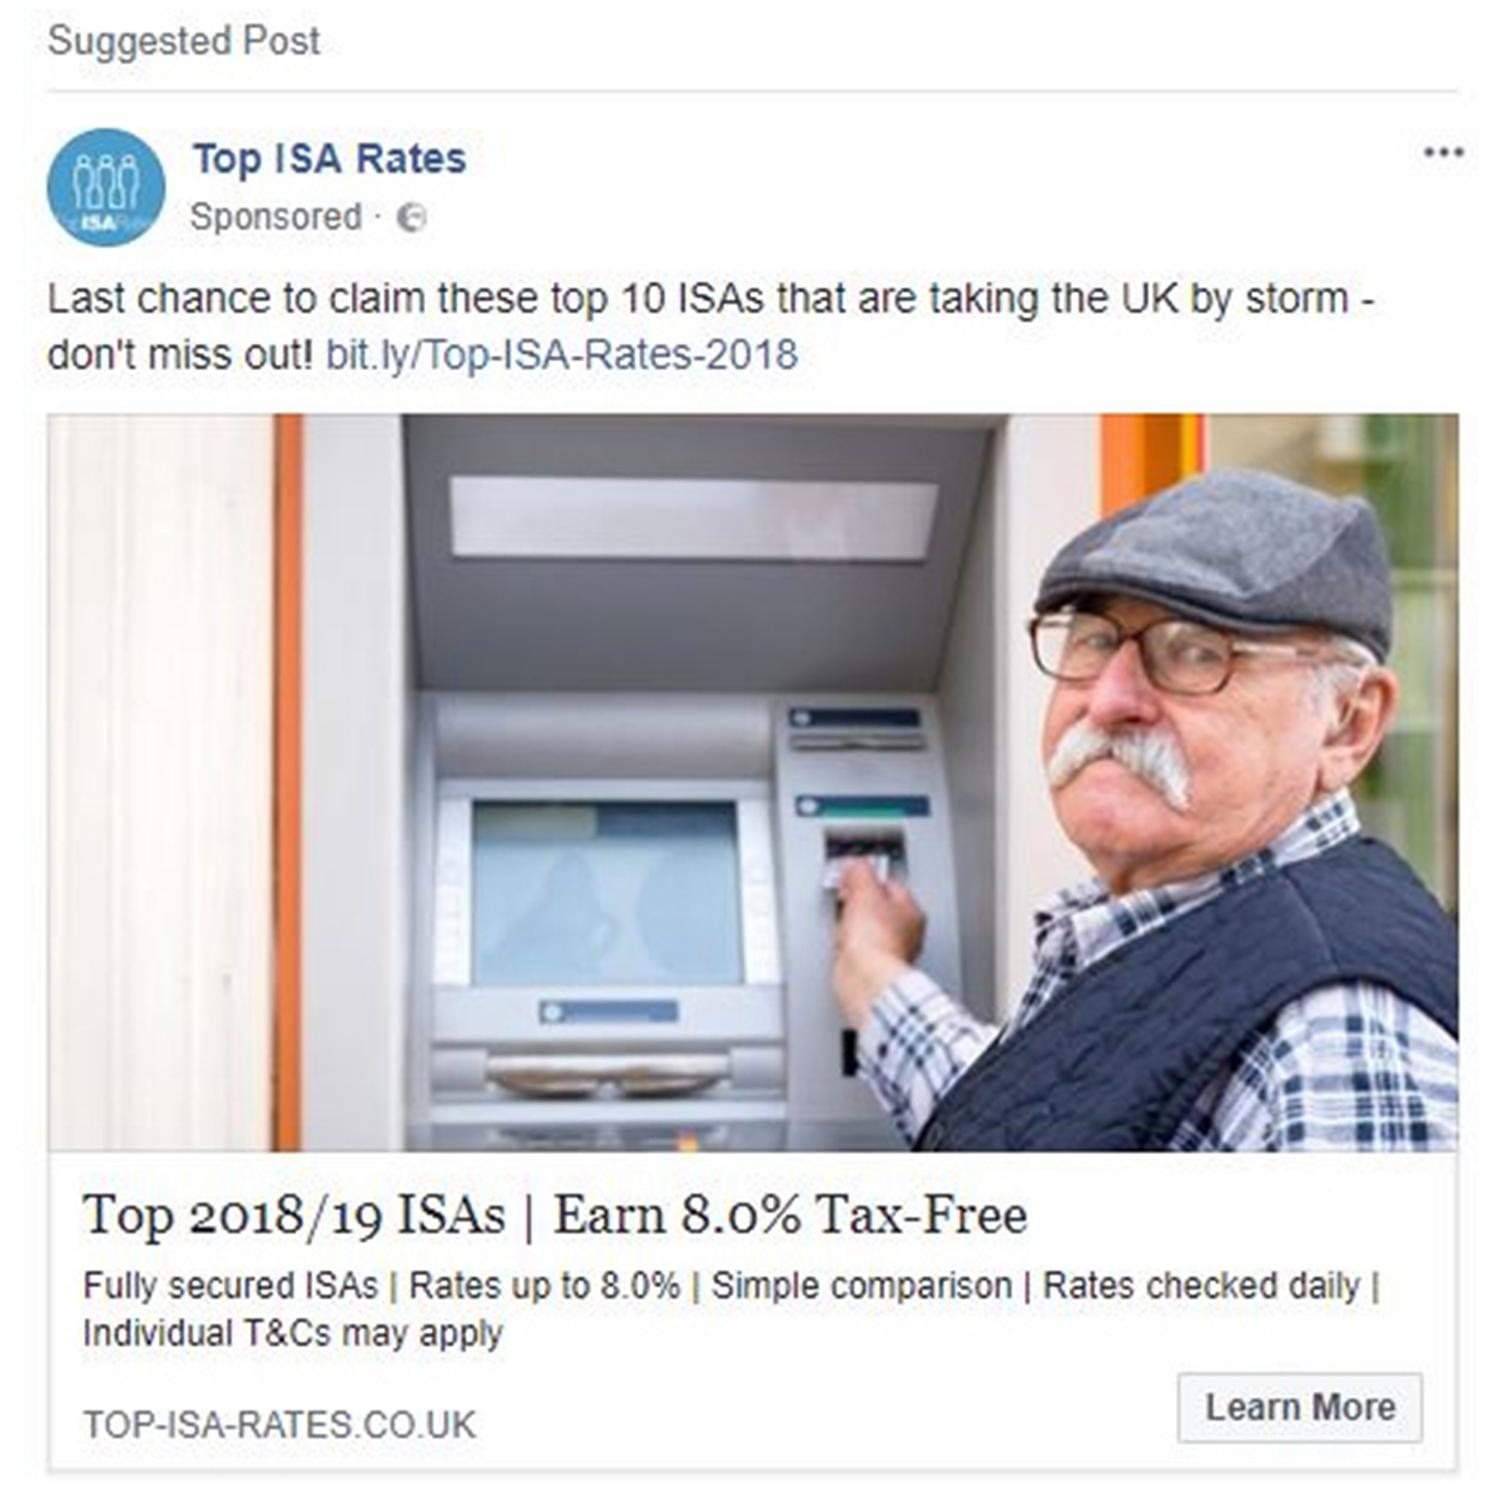 Facebook advert for Top ISA Rates